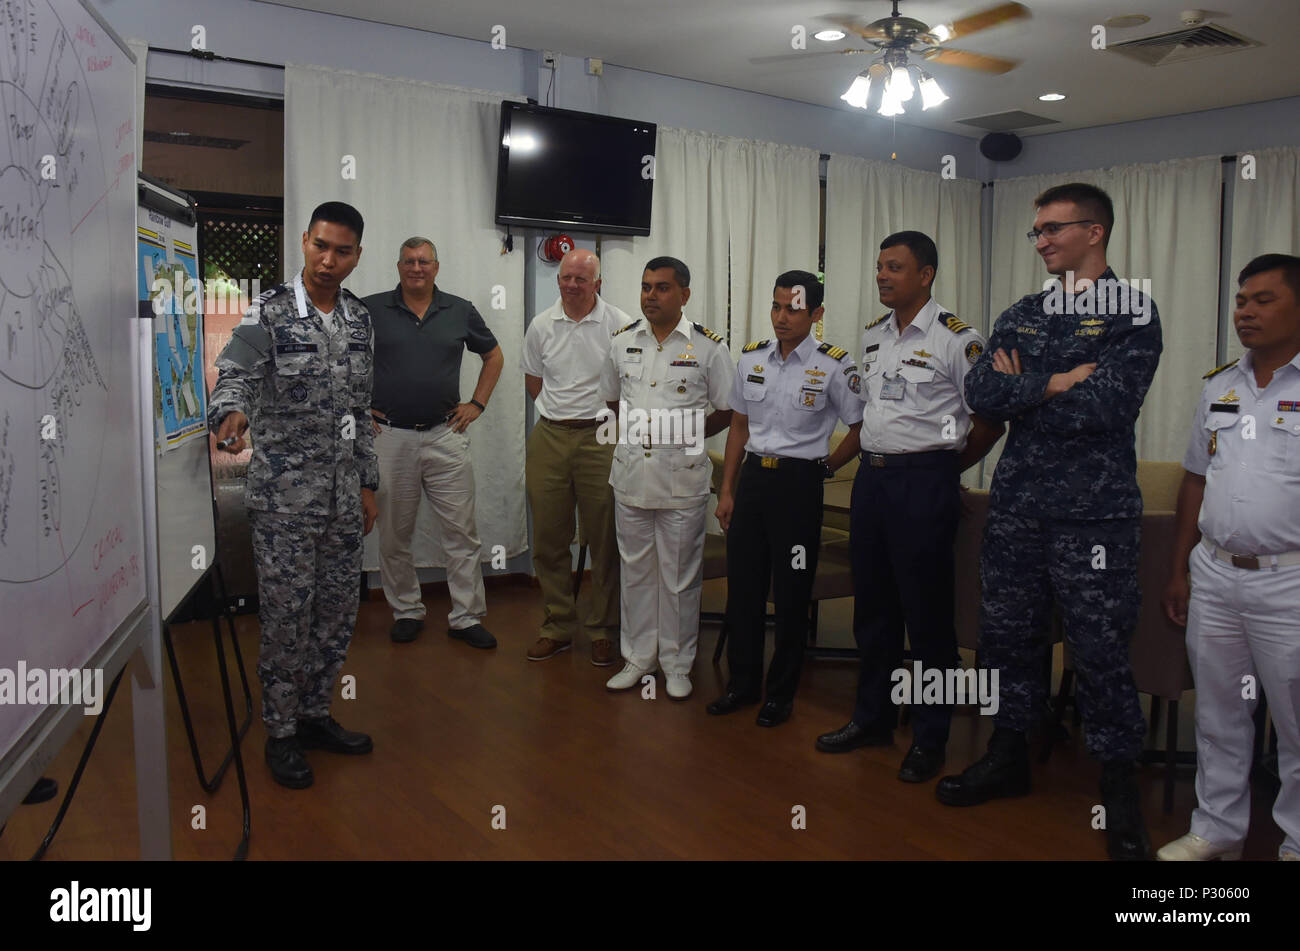 Singapore Navy Officers Stock Photos Tendencies Long Pants Rigid Chinos 26 160818 N Wj640 018 Aug 16 2016 Liaison